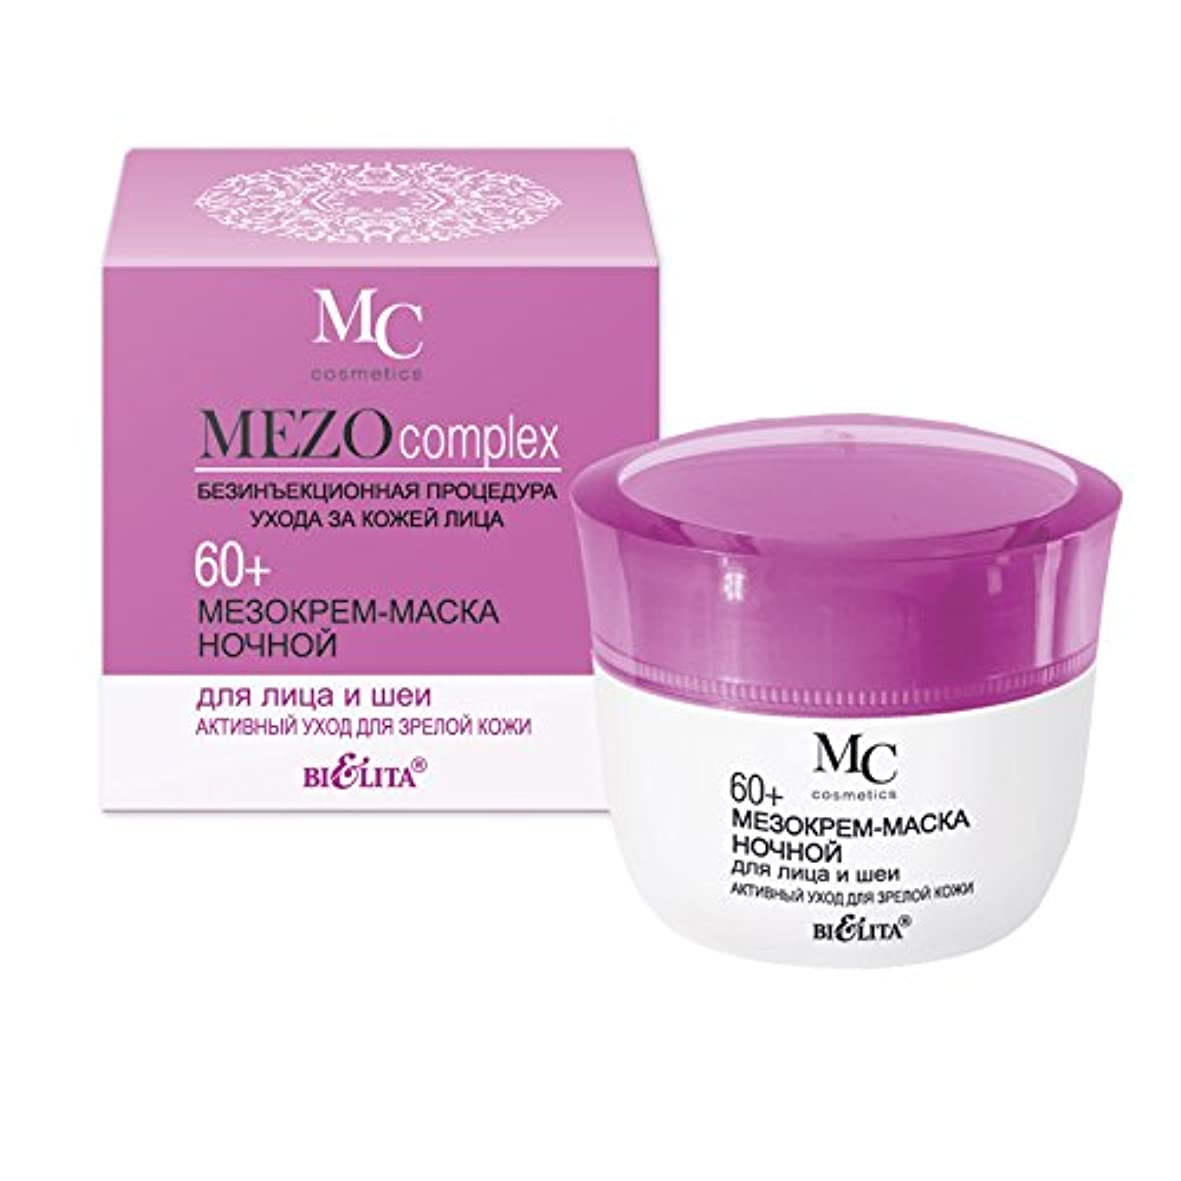 単位圧力毒性Night cream mask (MEZO) for face and neck 60+ care for mature skin | Hyaluronic acid, Vitamin E, Peach seed oil...